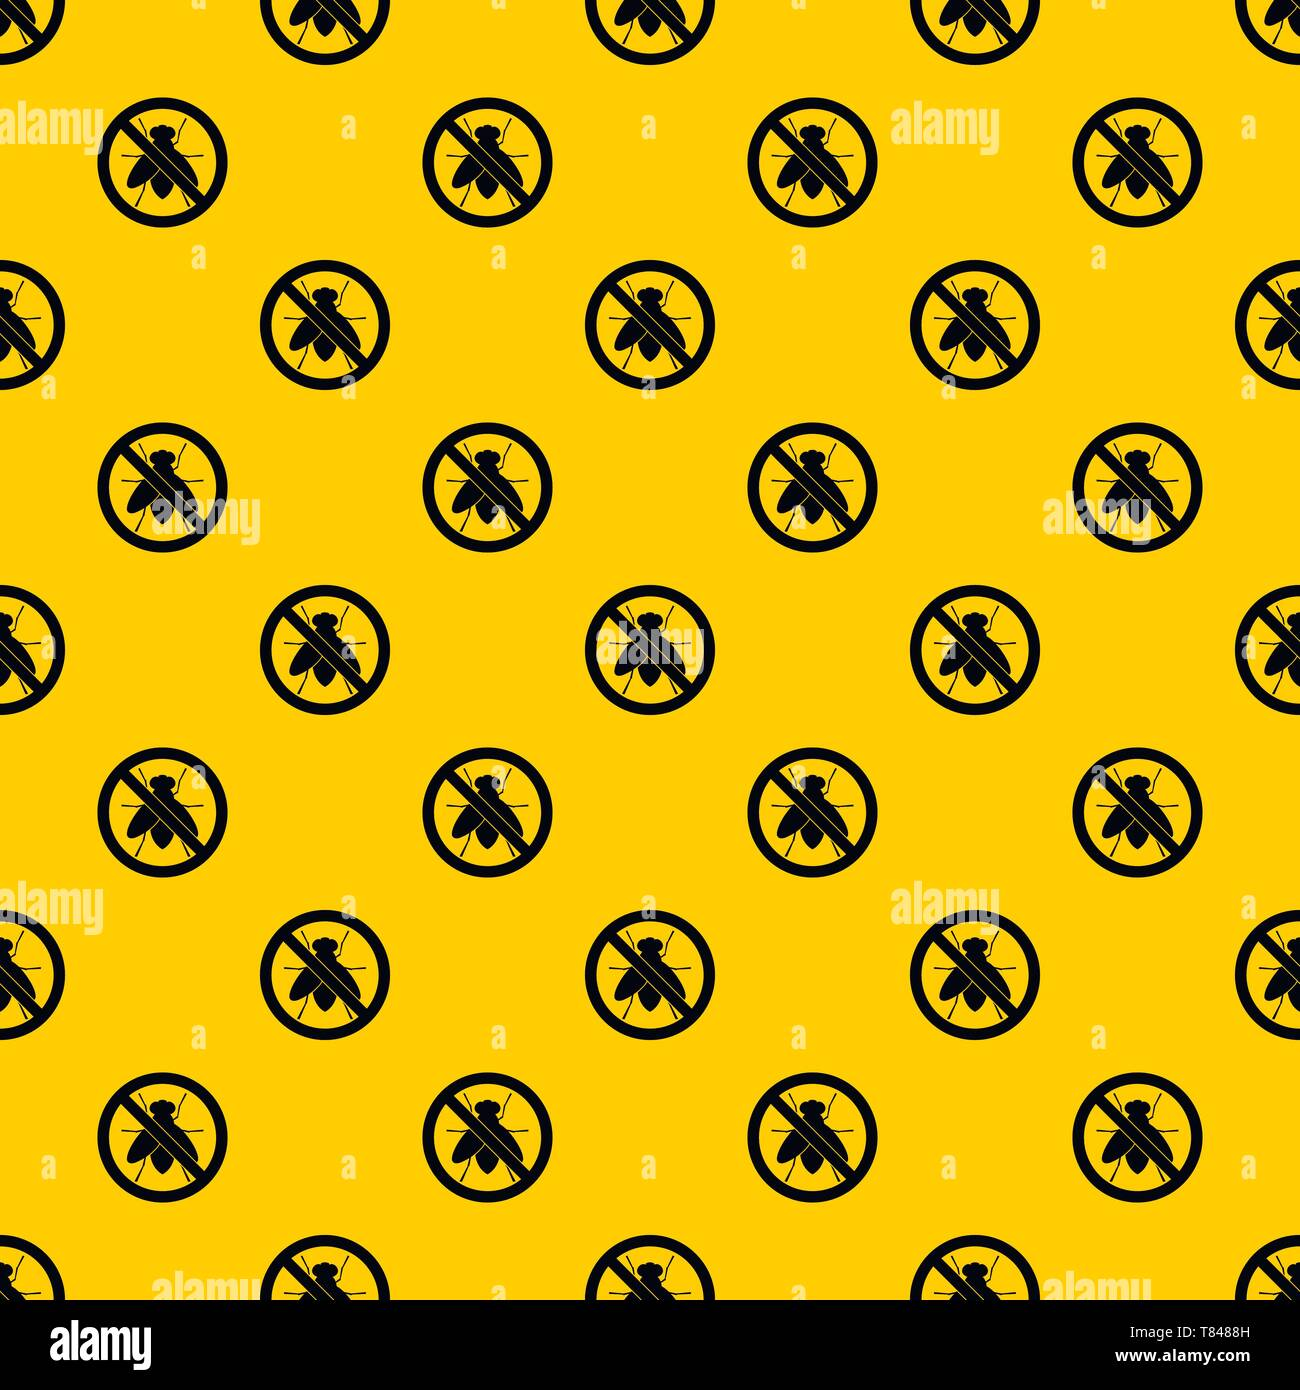 No fly sign pattern vector - Stock Image